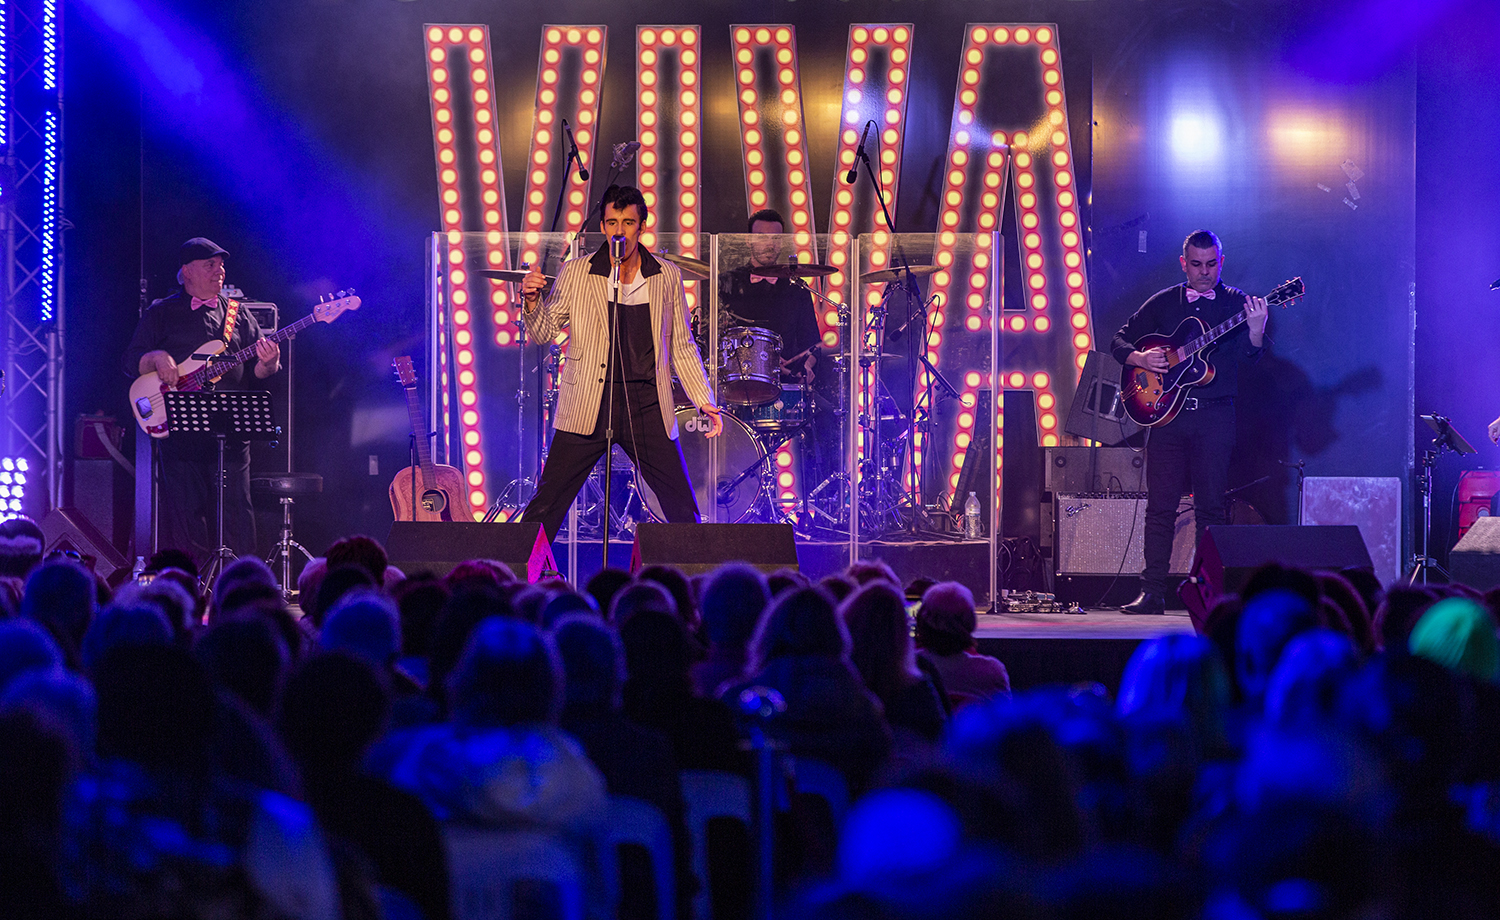 Cooly Rocks On announces merge with VIVA Surfers Paradise